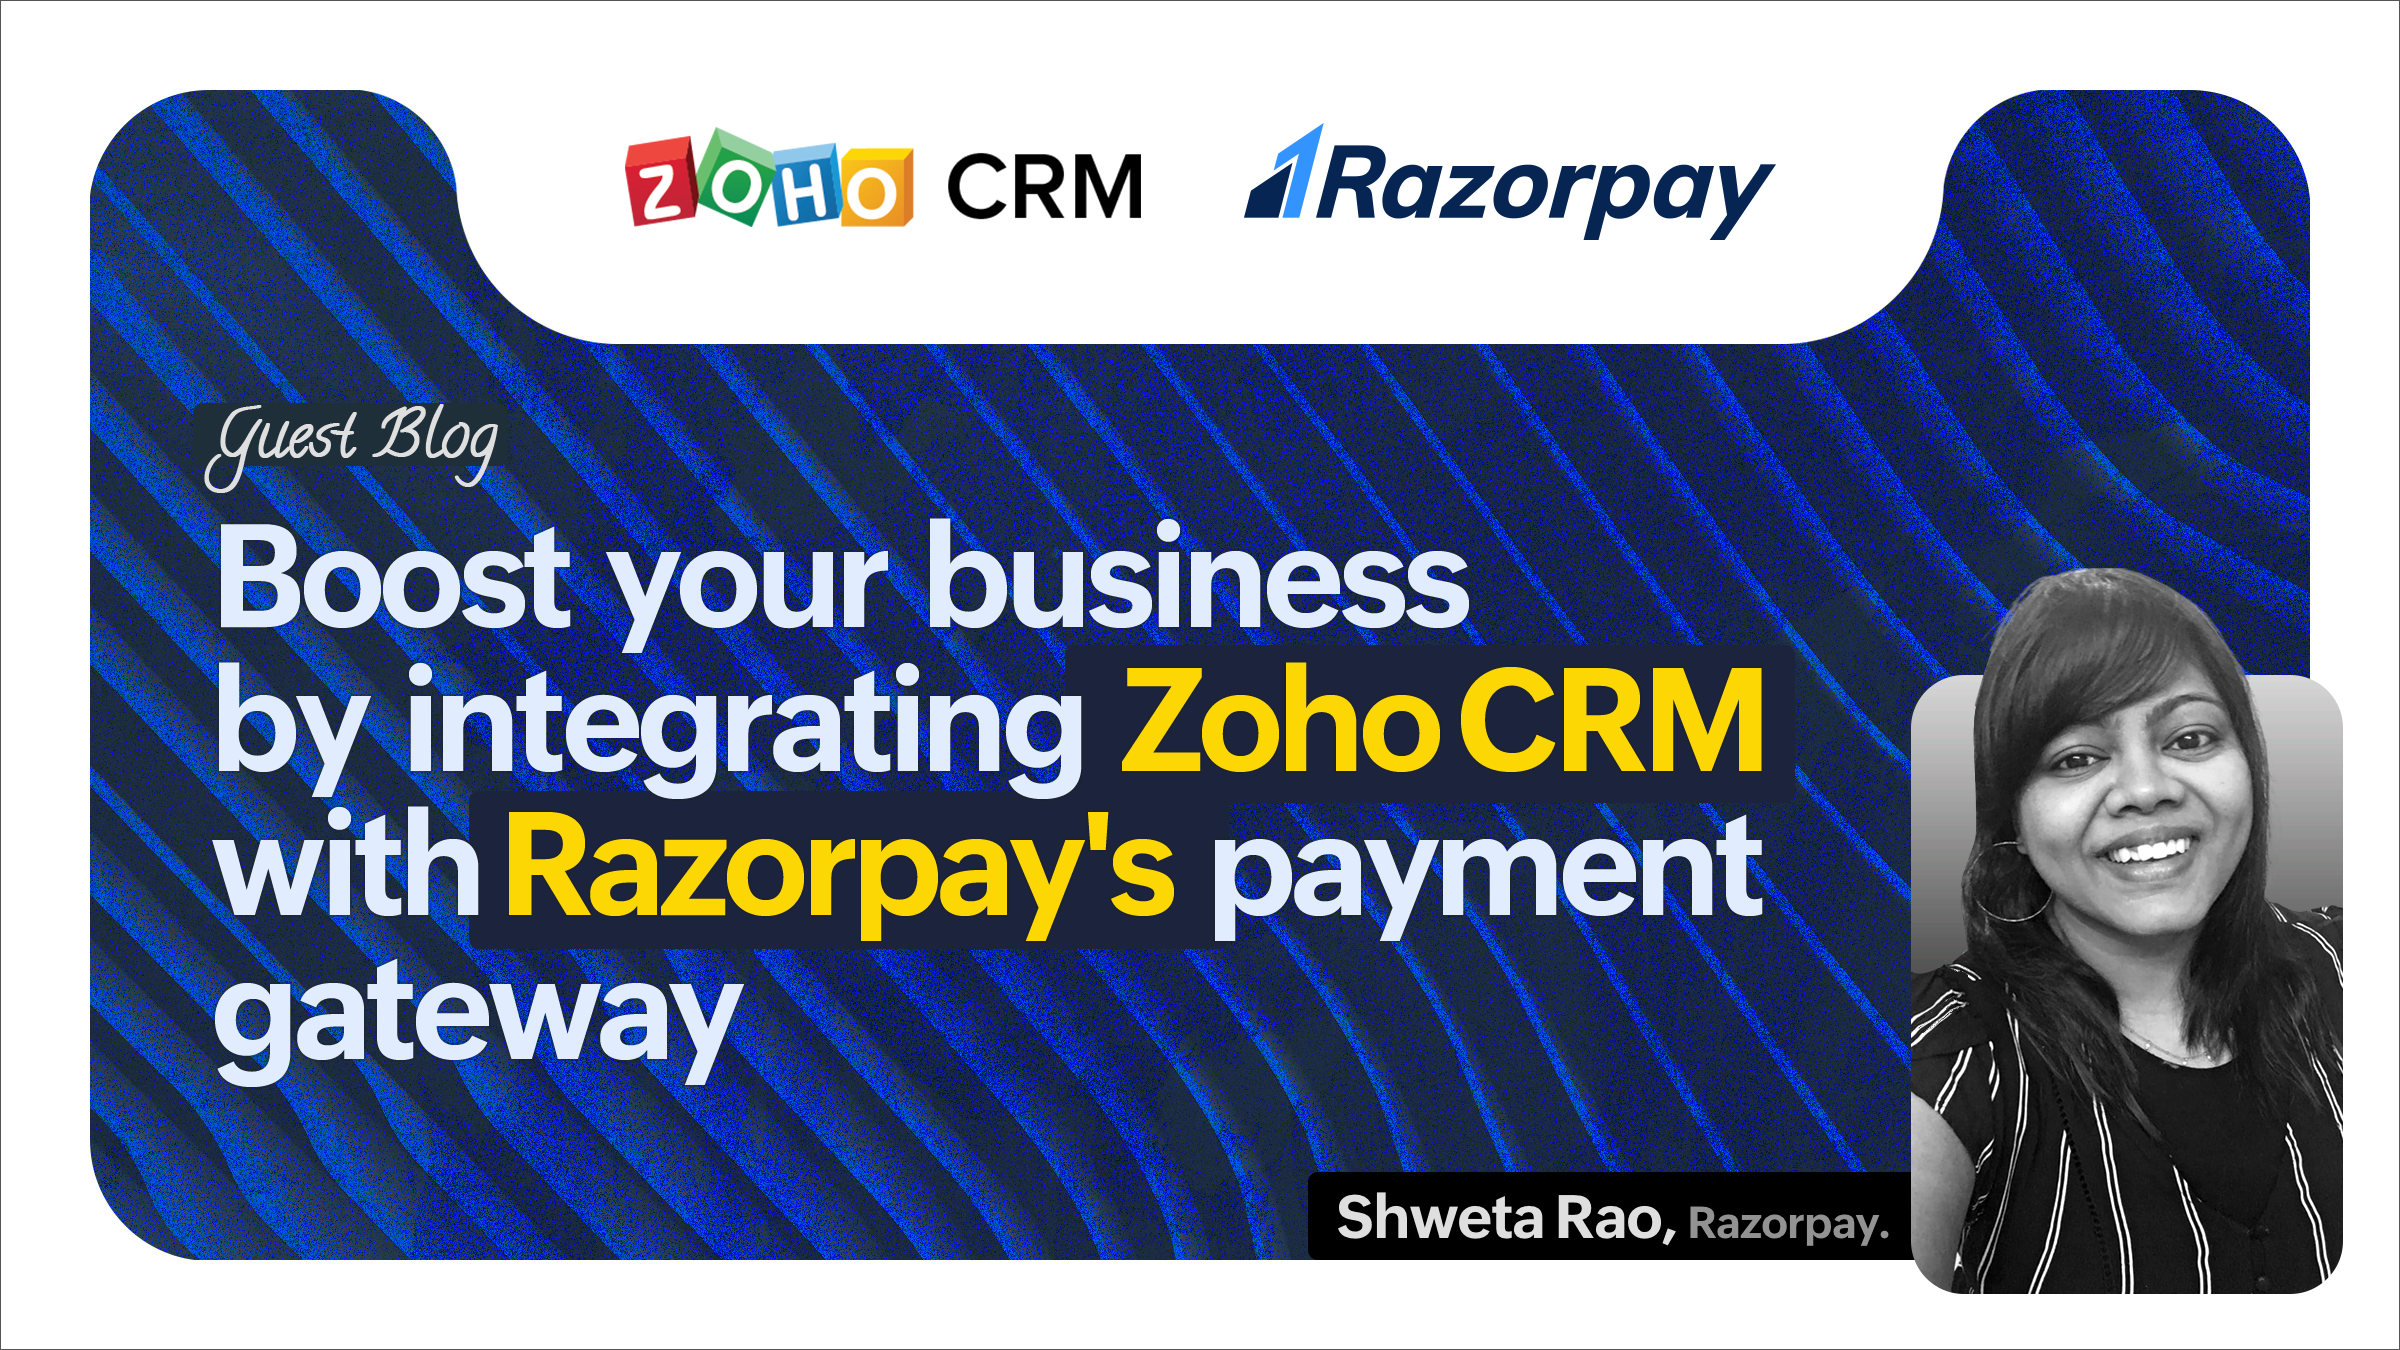 Boost your business by integrating Zoho CRM with Razorpay's payment gateway